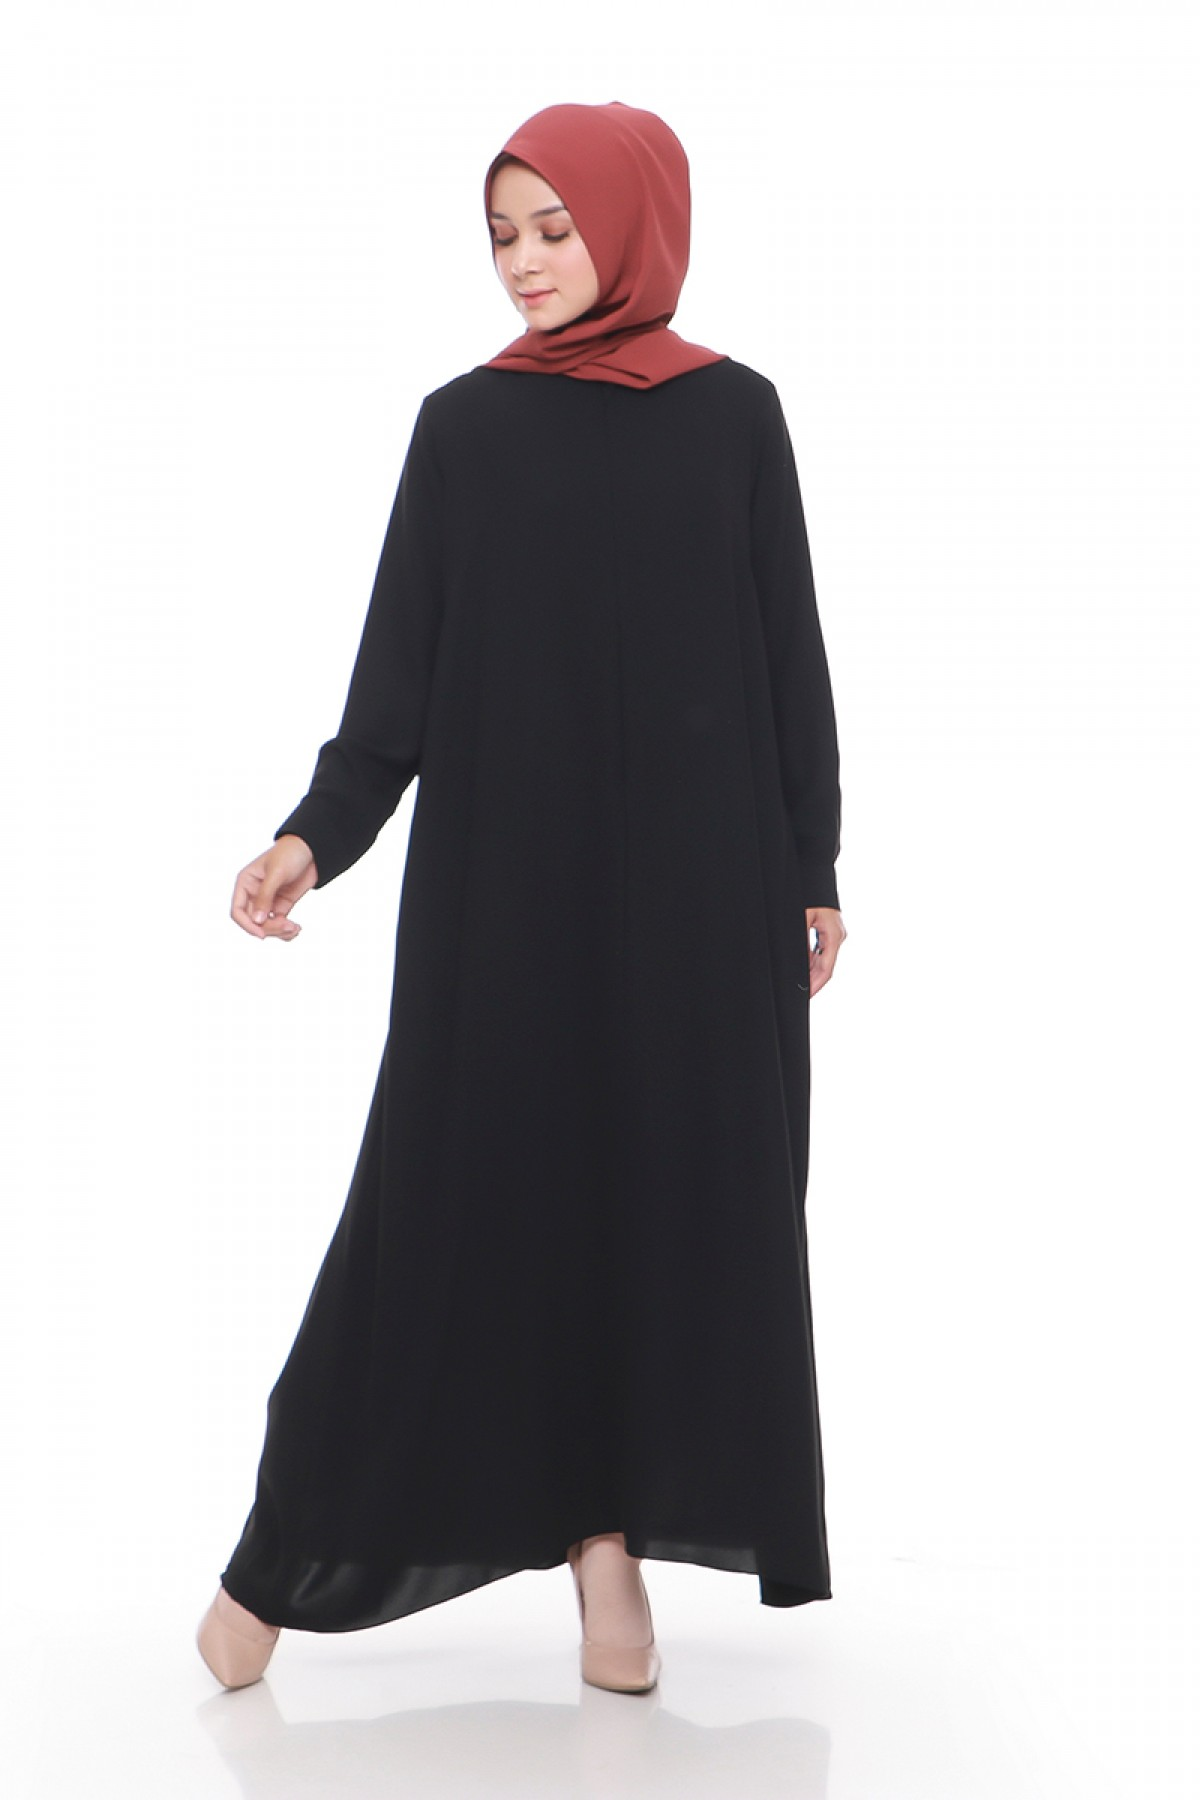 Diera Dress Steel Black - L.tru